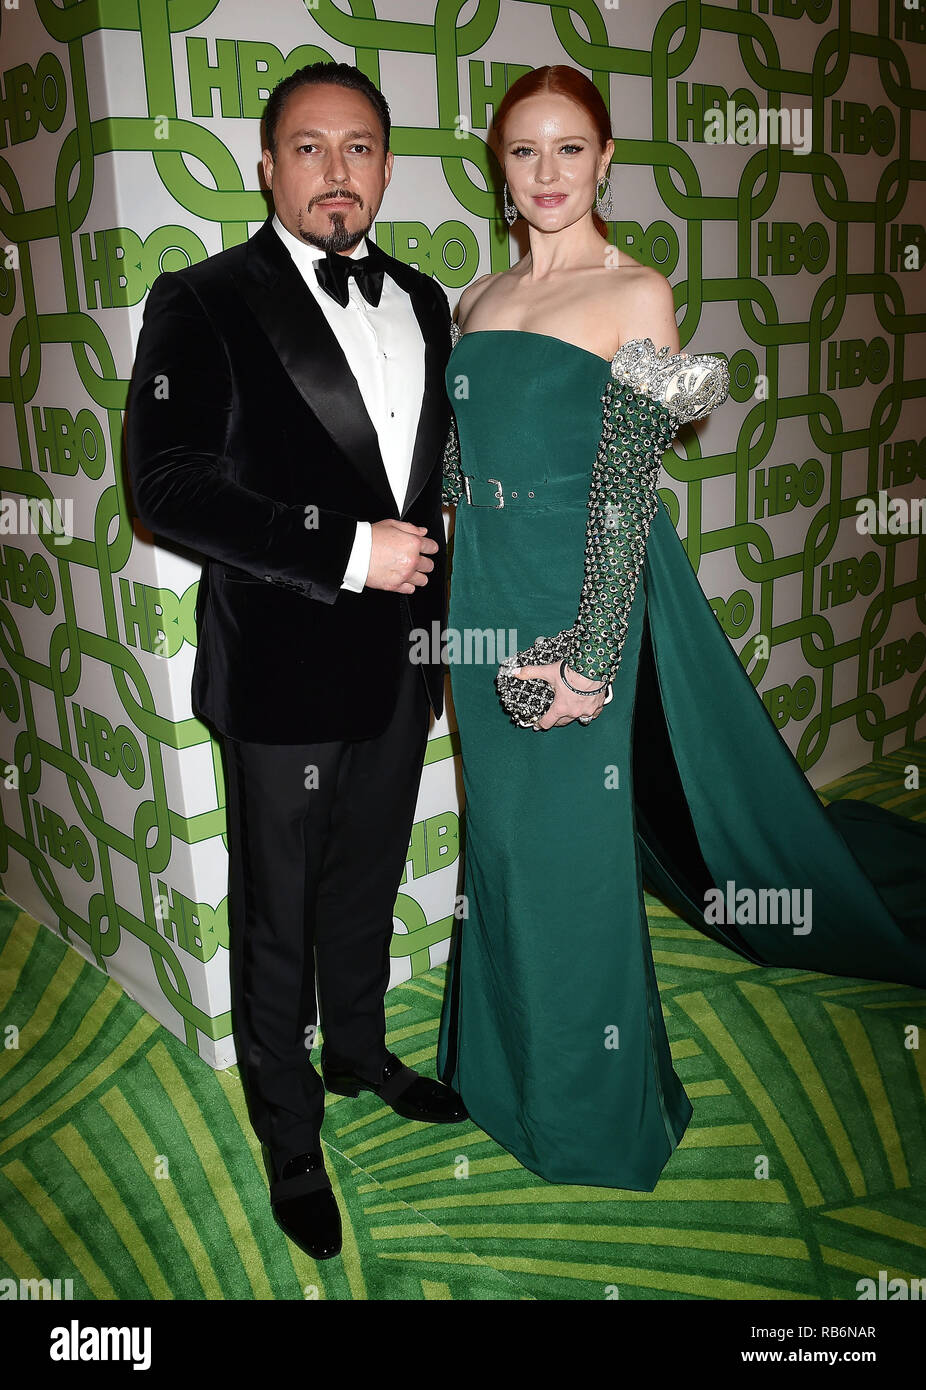 BEVERLY HILLS, CA - JANUARY 06: Barbara Meier (R) and Klemens Hallmann attend HBO's Official Golden Globe Awards After Party at Circa 55 Restaurant at the Beverly Hilton Hotel on January 6, 2019 in Beverly Hills, California. Credit: Jeffrey Mayer/Alamy Live News - Stock Image